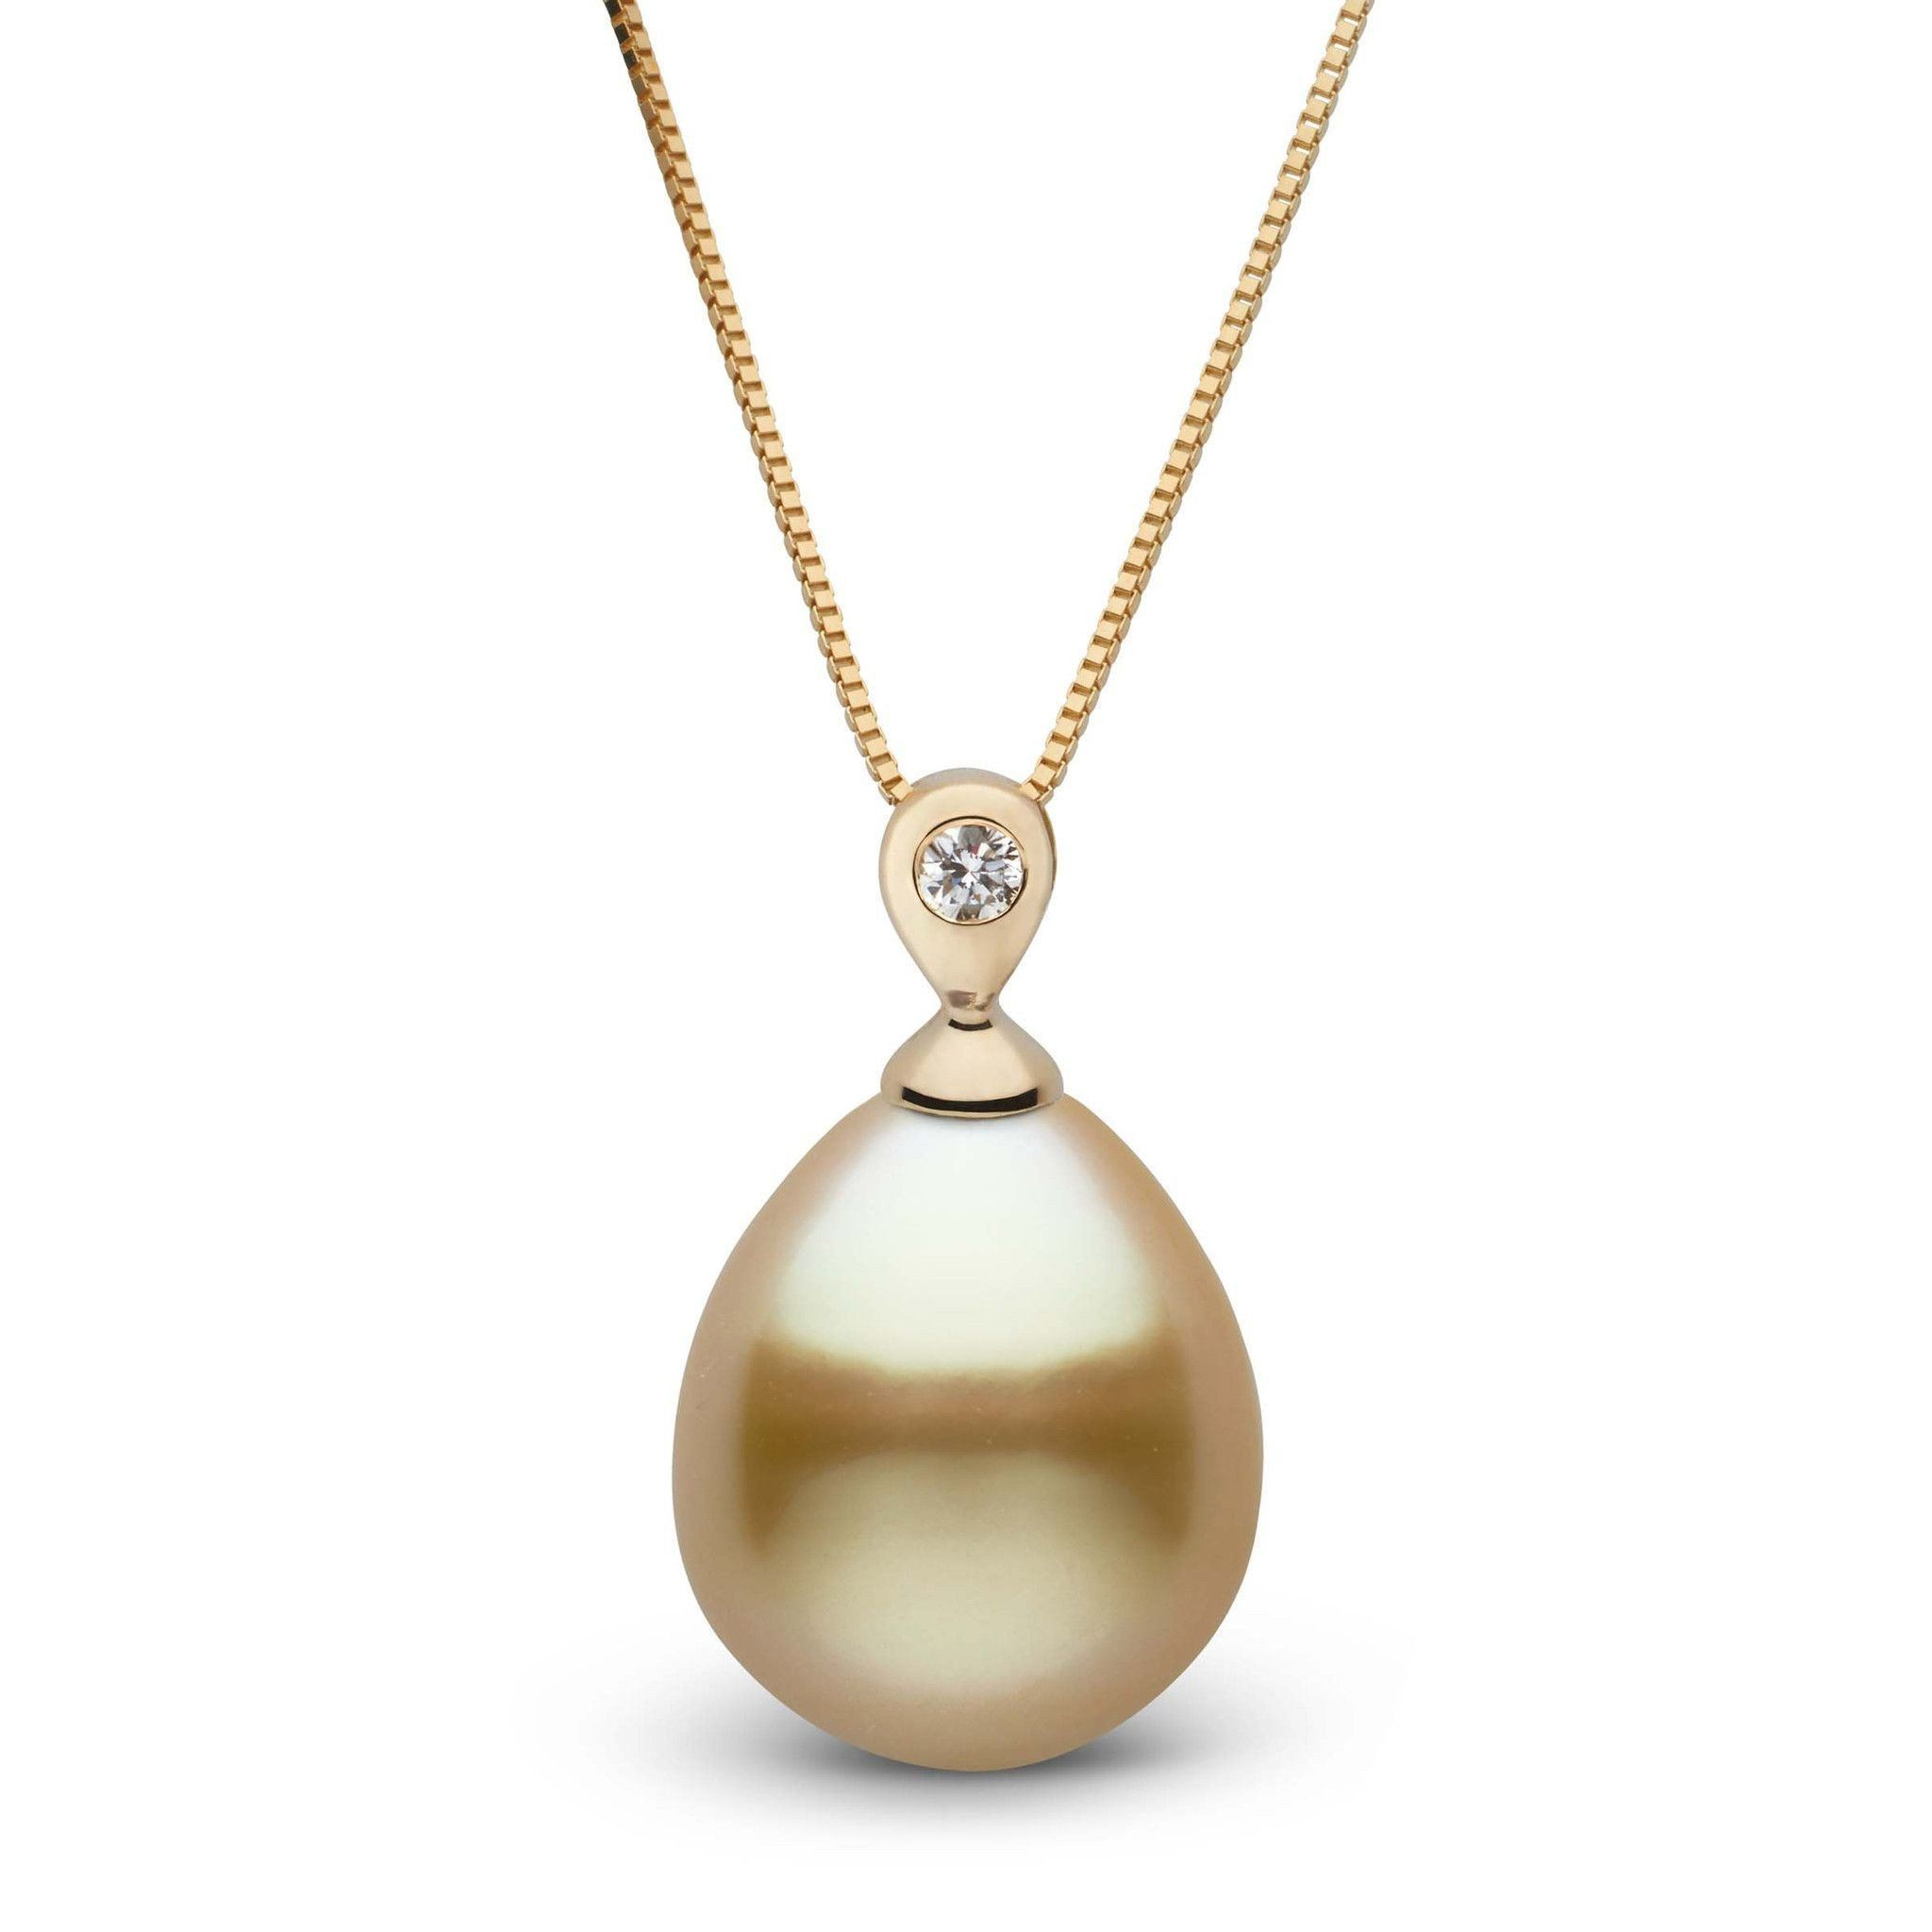 jewellers pear pearls and pearl yg sku categories pendant necklaces product austen jewellery diamond tags gold